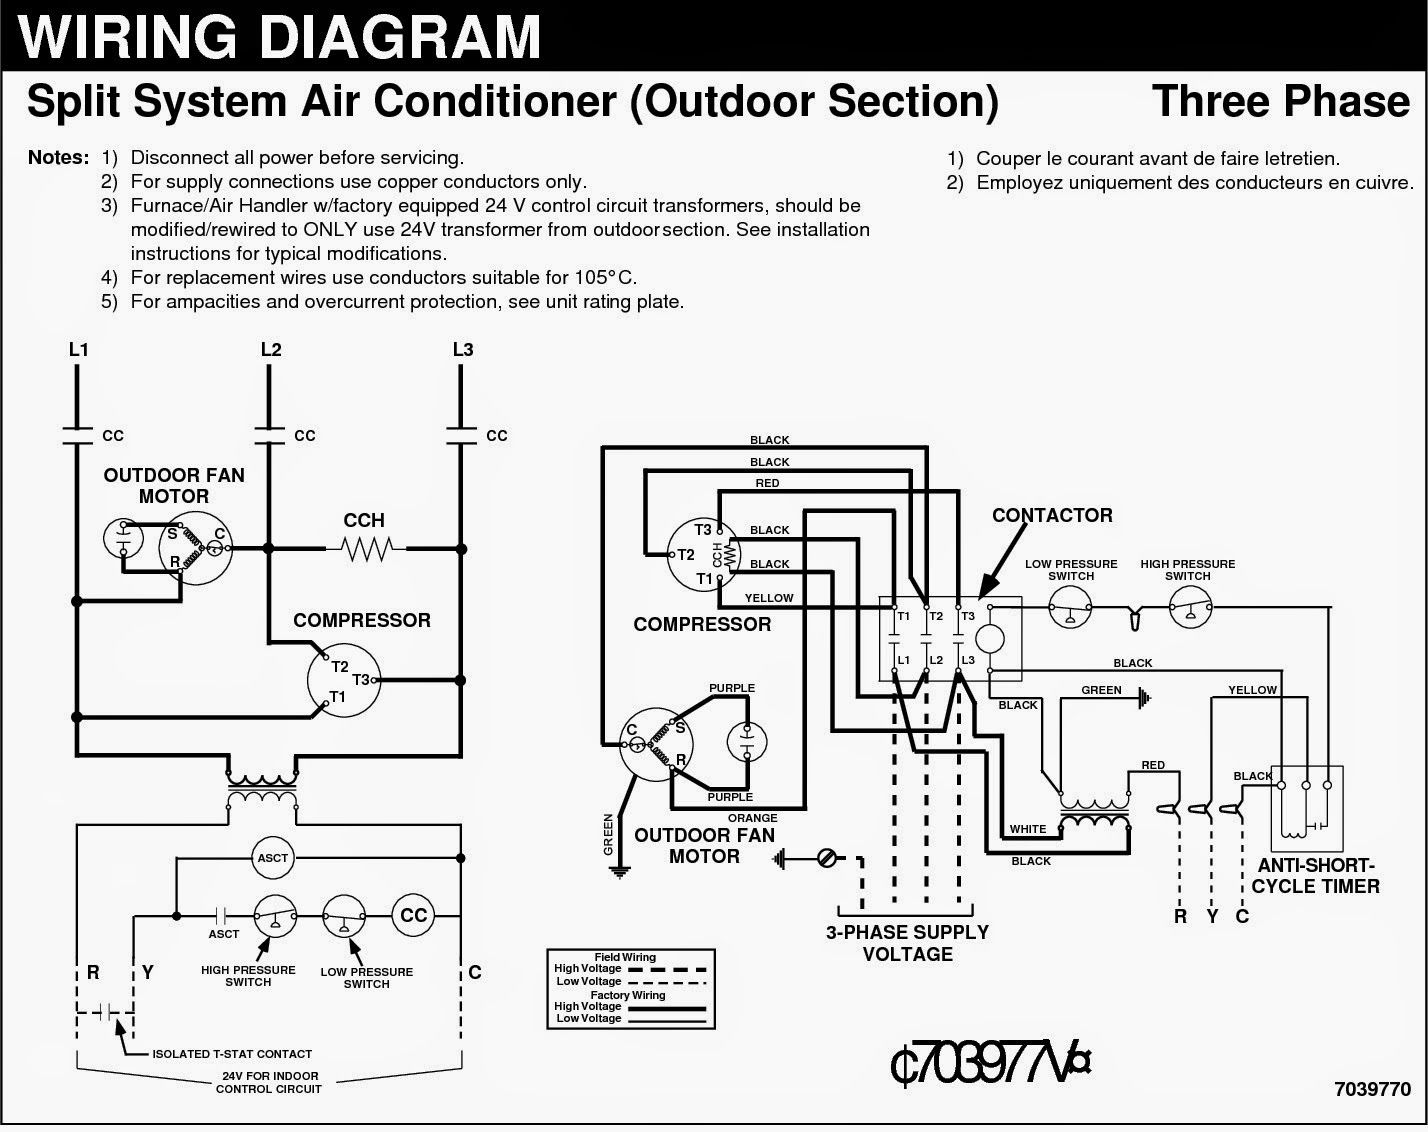 Electrical Wiring Diagrams For Air Conditioning Systems Part Two Electrical Kn Electrical Wiring Diagram Air Conditioning System Electrical Circuit Diagram